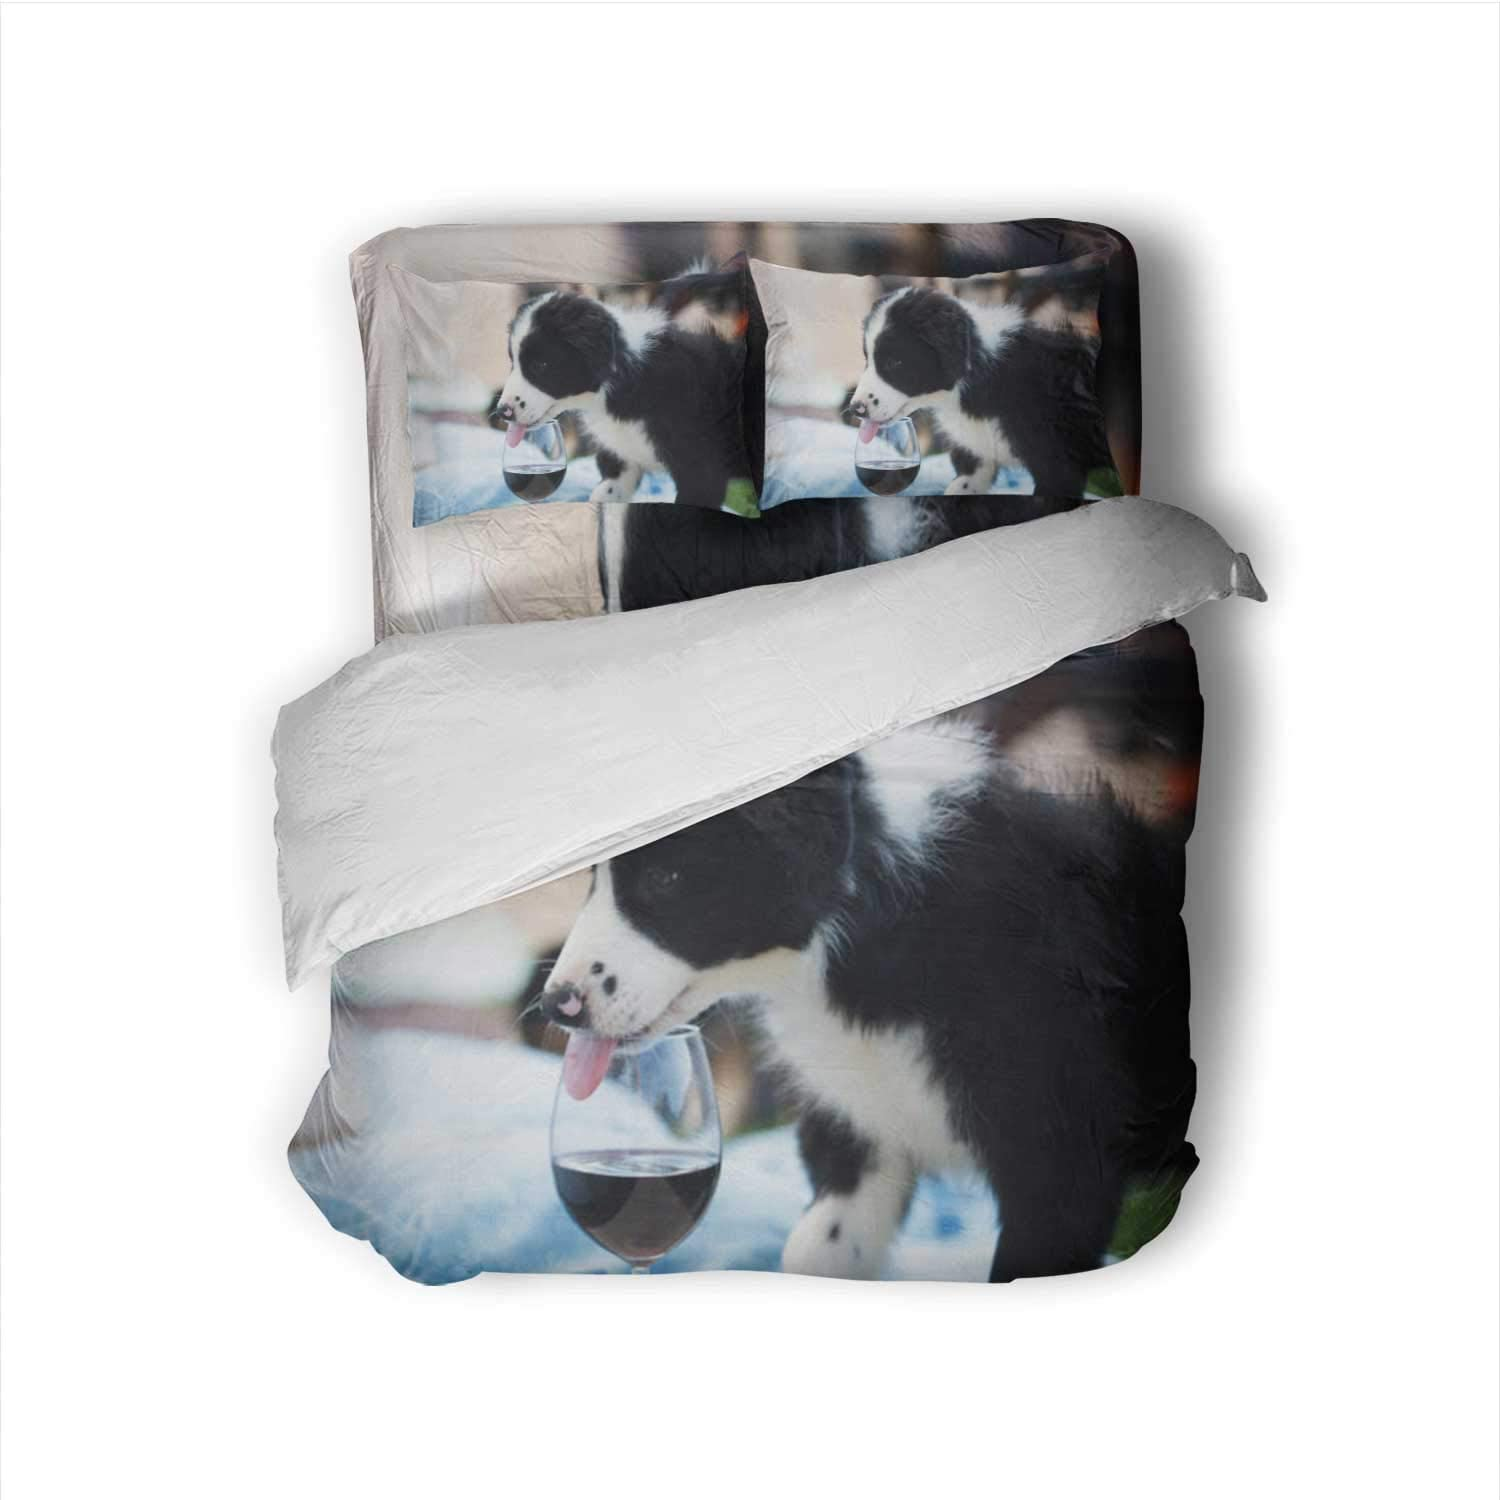 Hitecera Border Collie Puppy with Tongue in a red Wine Glass Drinking,100% Cotton King Size Sheets Set - Soft 4 Piece Sheets and Pillowcases Puppy King